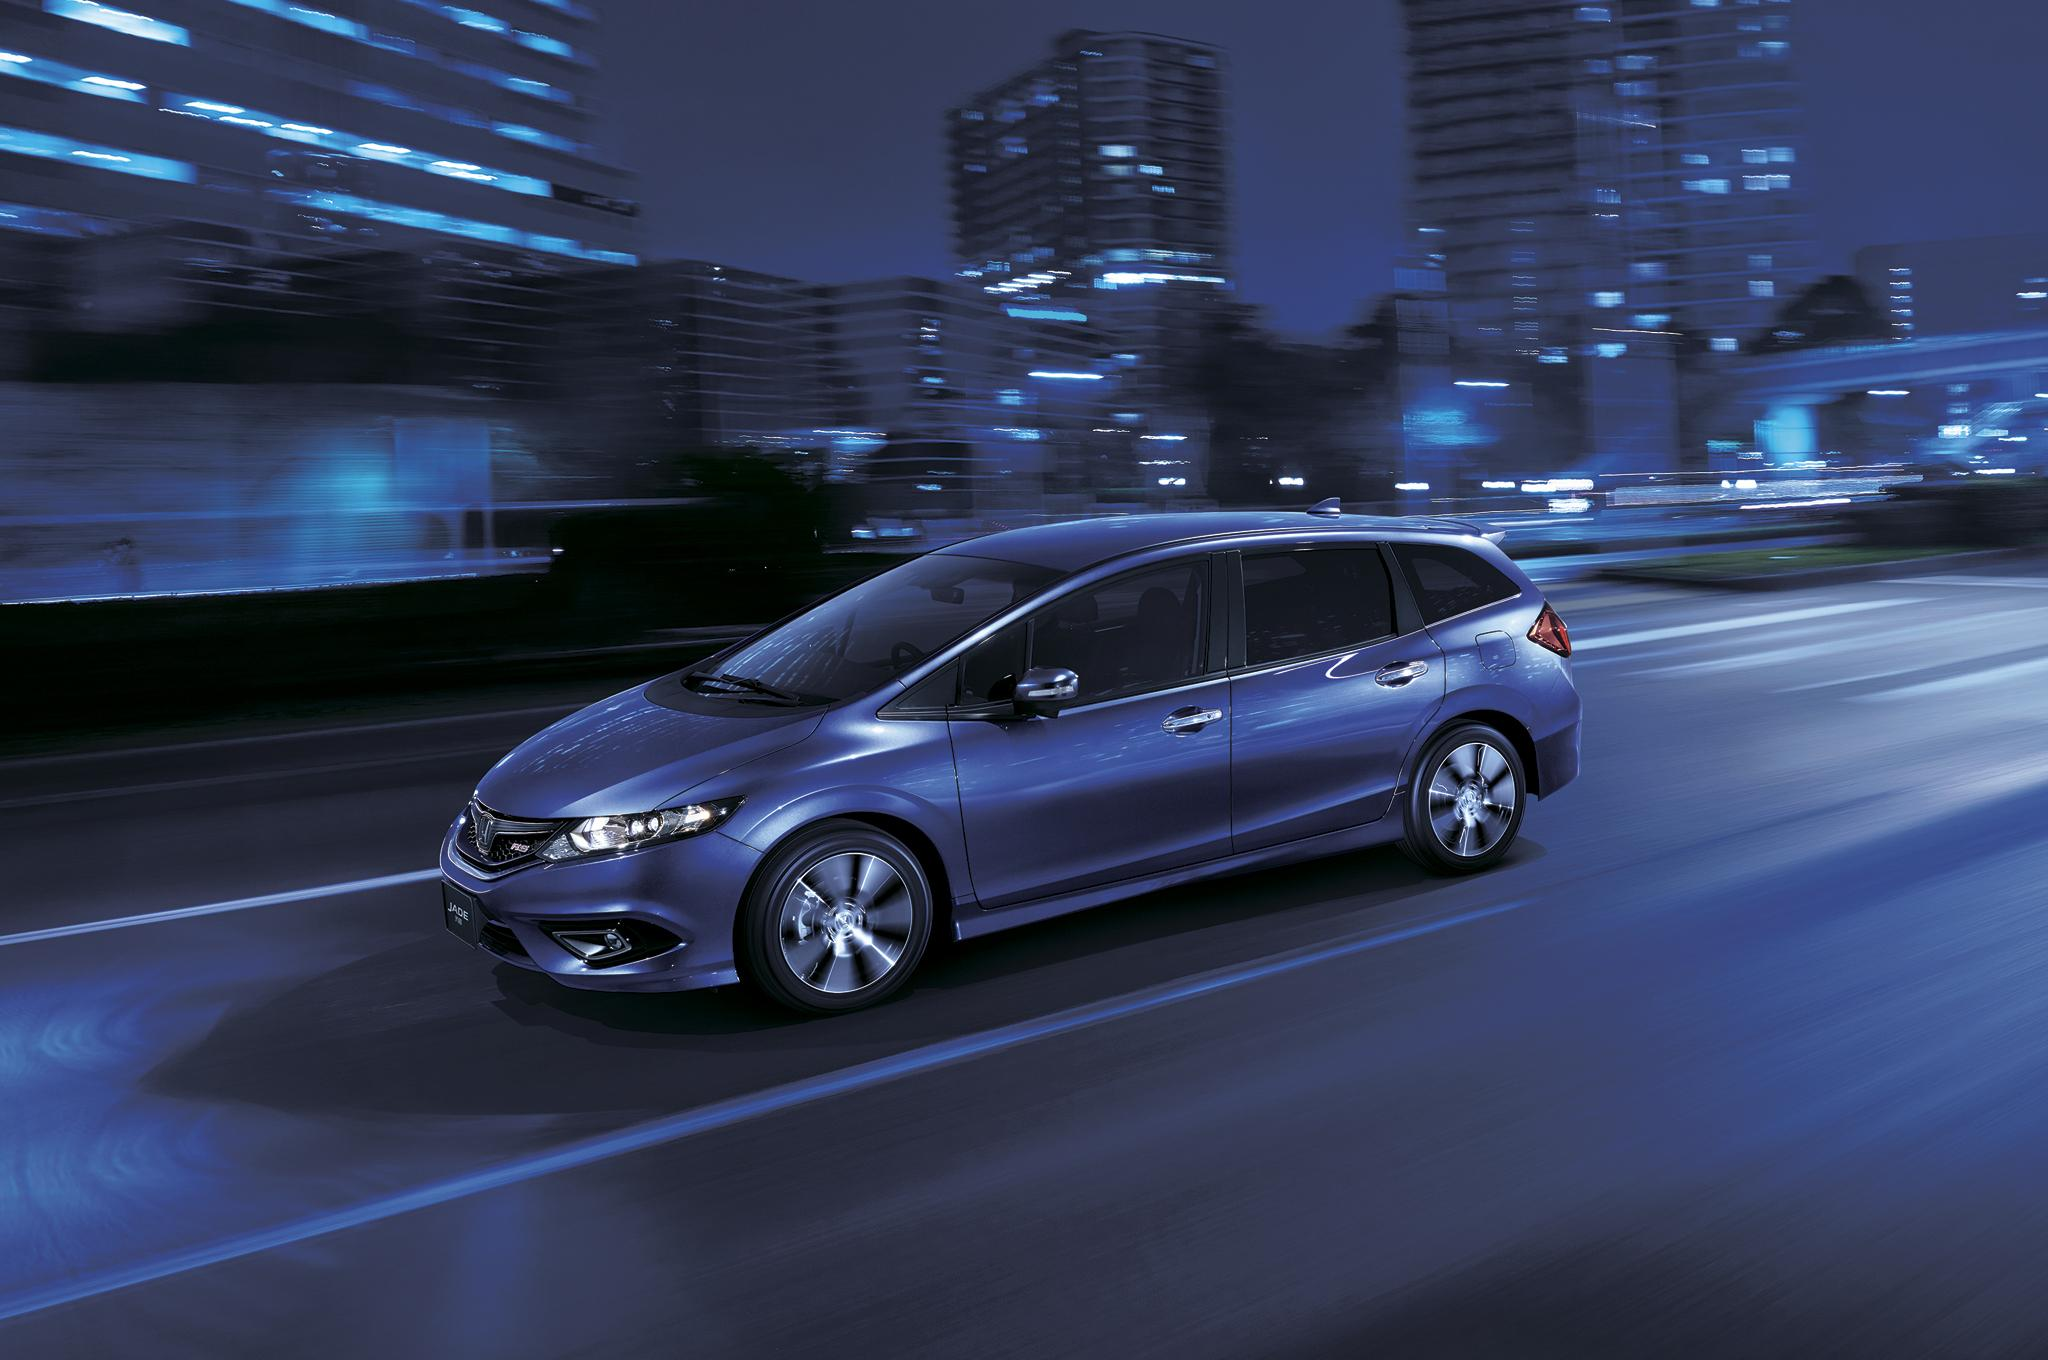 Honda Introduced 1.5L Turbo Engine to Jade RS, Output Spec ...